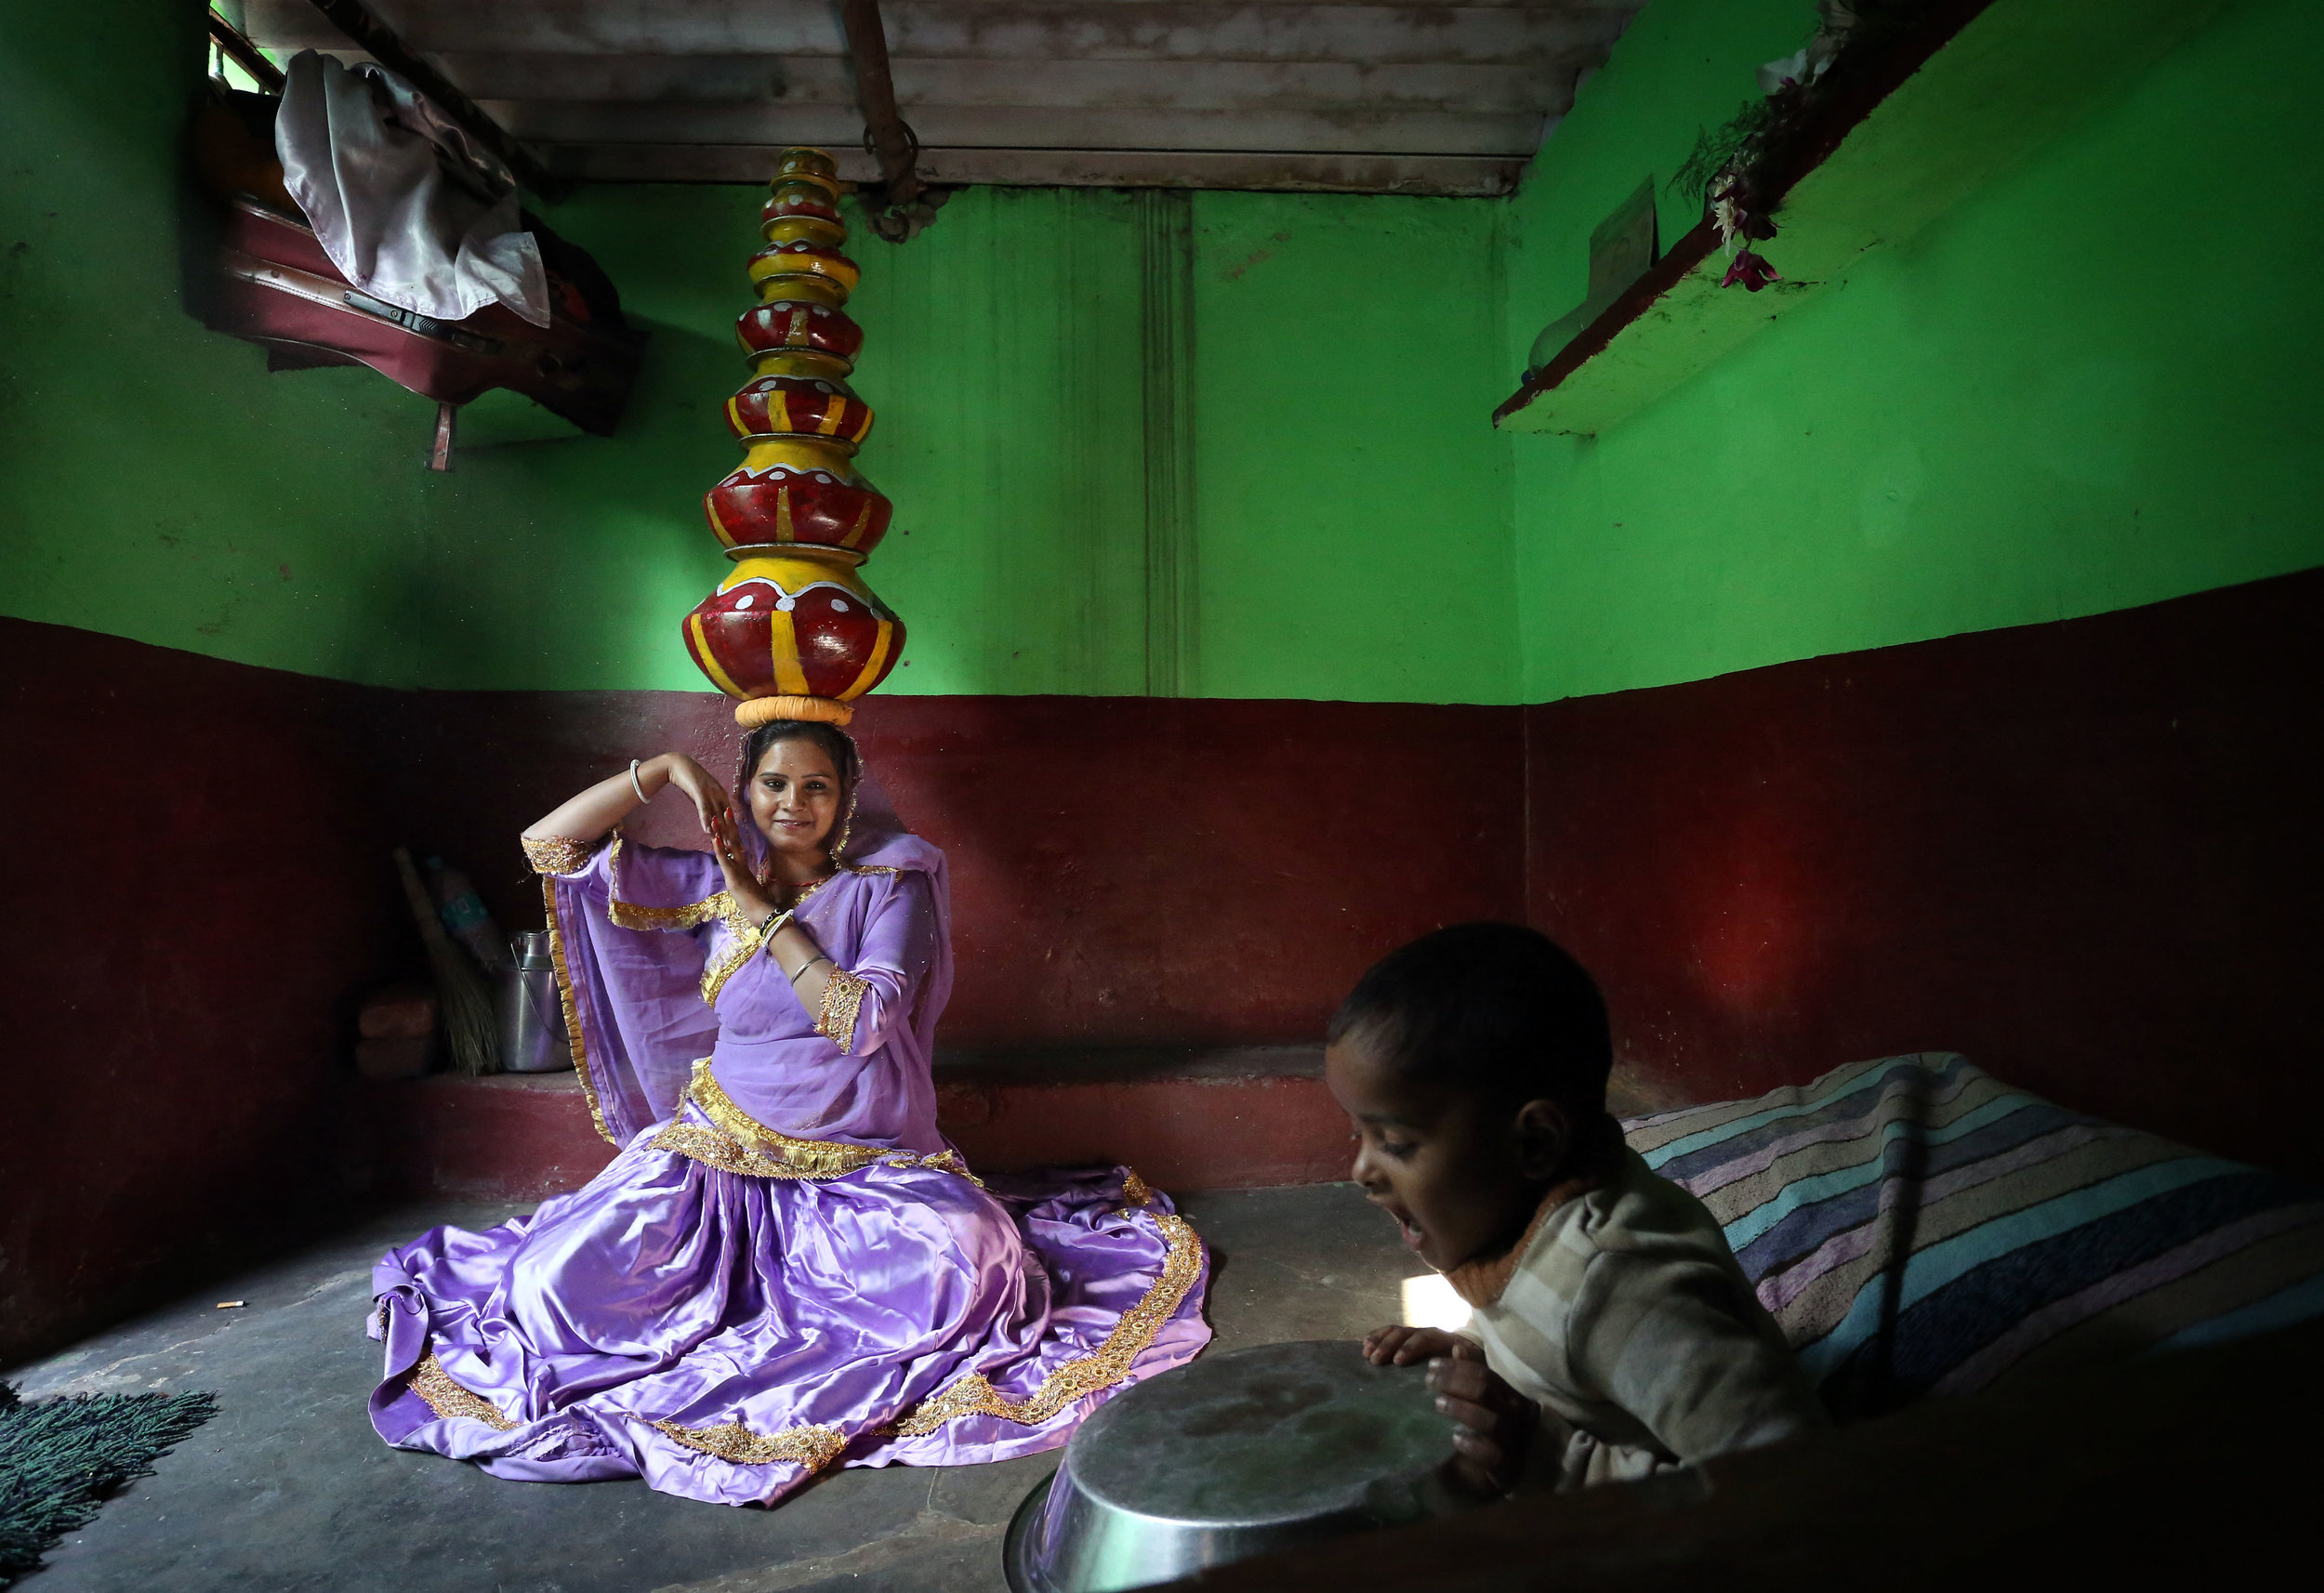 Bhavai dancer Arti Bhatt, practises the traditional Rajasthani folk dance balancing pots on her head alongside her son at their home in the Kathputli slum colony of New Delhi, India, December 7th, 2014. She is one of 40,000 people living in the slum, which is popularly known for being the worlds largest colony of street performers, including magicians, snake charmers, acrobats, singers, dancers, actors, traditional healers and musicians and puppeteers. Their livelihood is under threat however as the Delhi government has obtained contracts to demolish the colony to make way for developers to build high-rise apartments. Photo Credit: Susannah Ireland